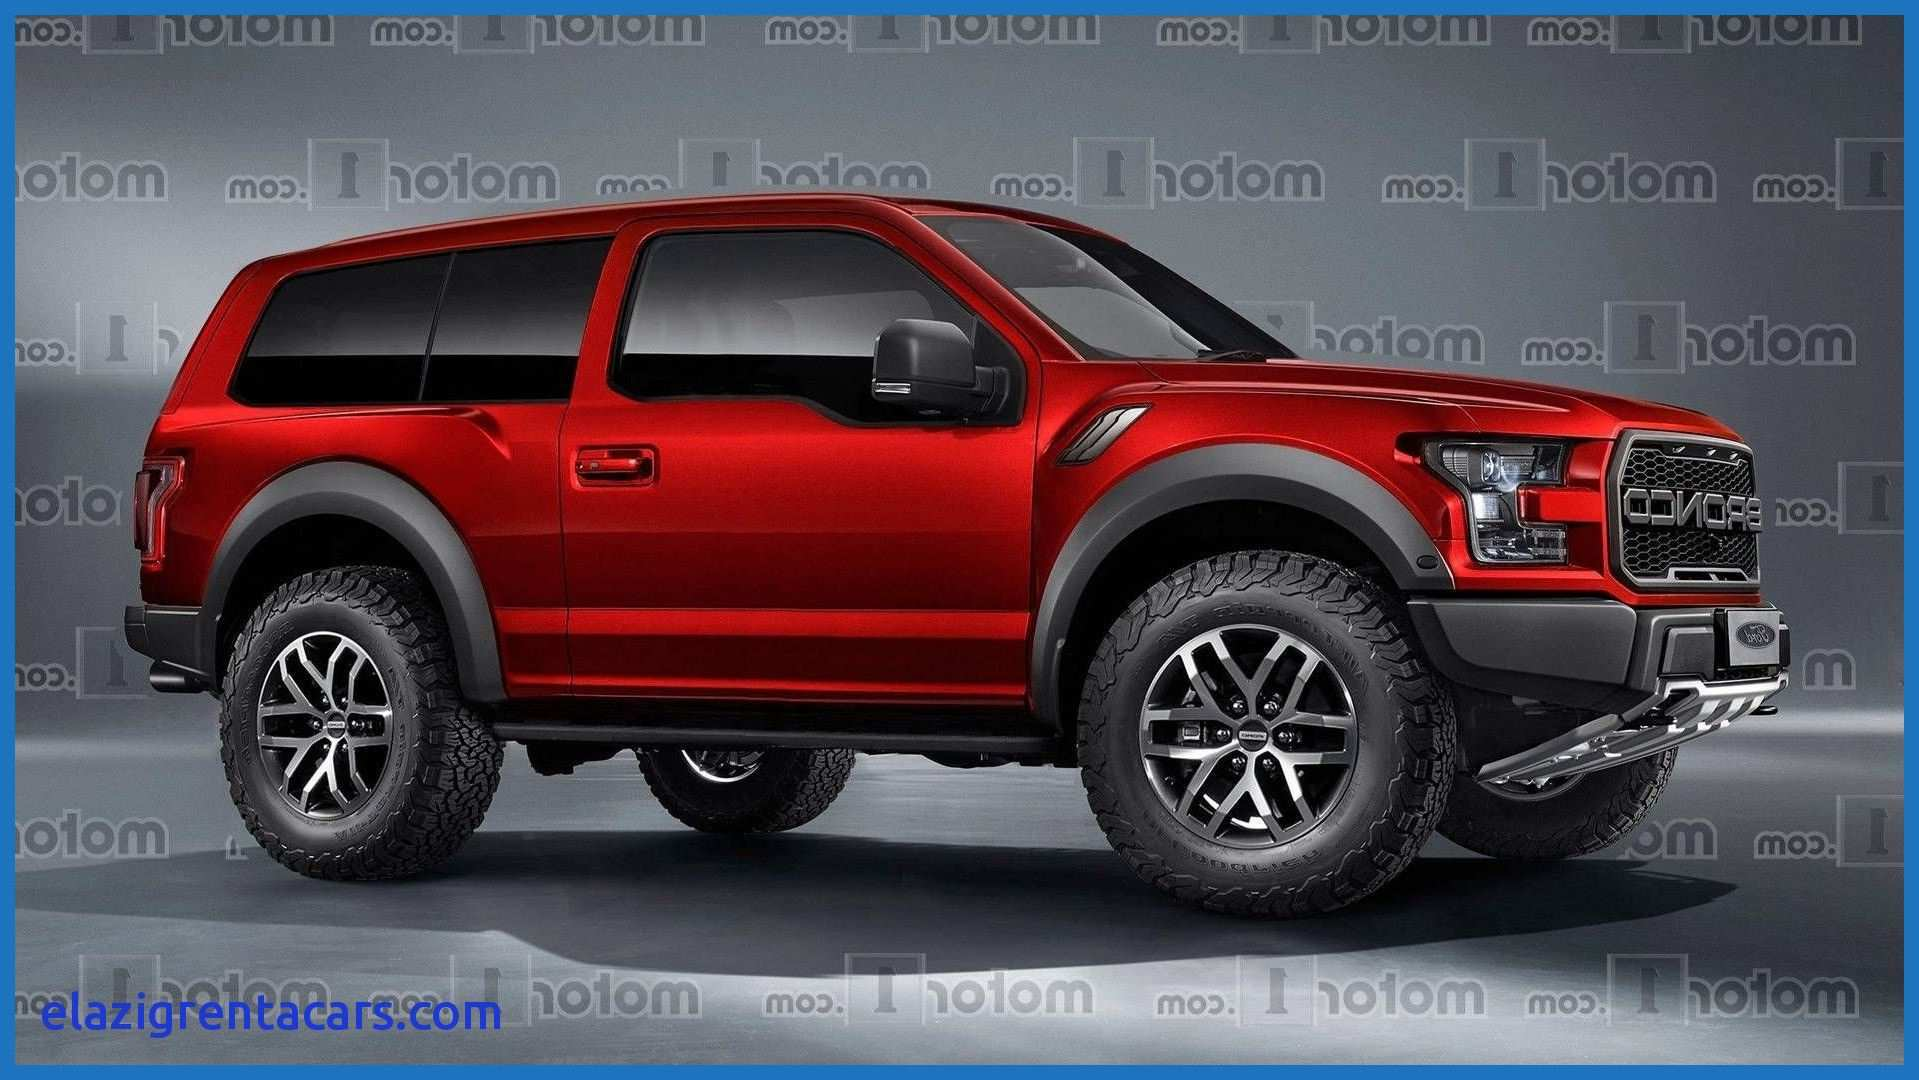 11 New 2020 Chevy K5 Blazer Research New with 2020 Chevy K5 Blazer